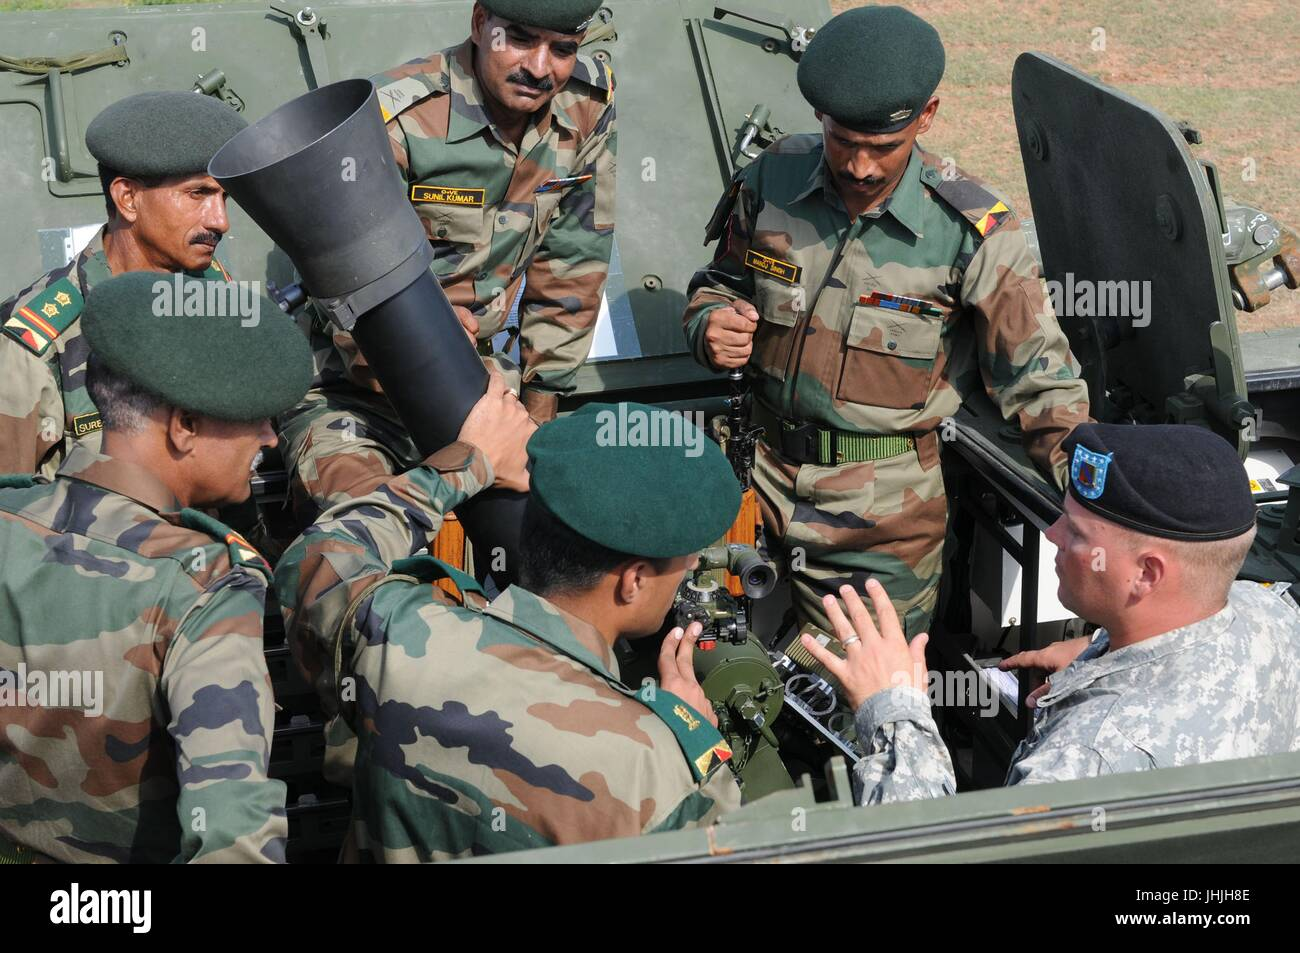 U.S. and Indian soldiers learn about the stryker vehicles mortar system during Exercise Yudh Abhyas at Camp Bundela - Stock Image